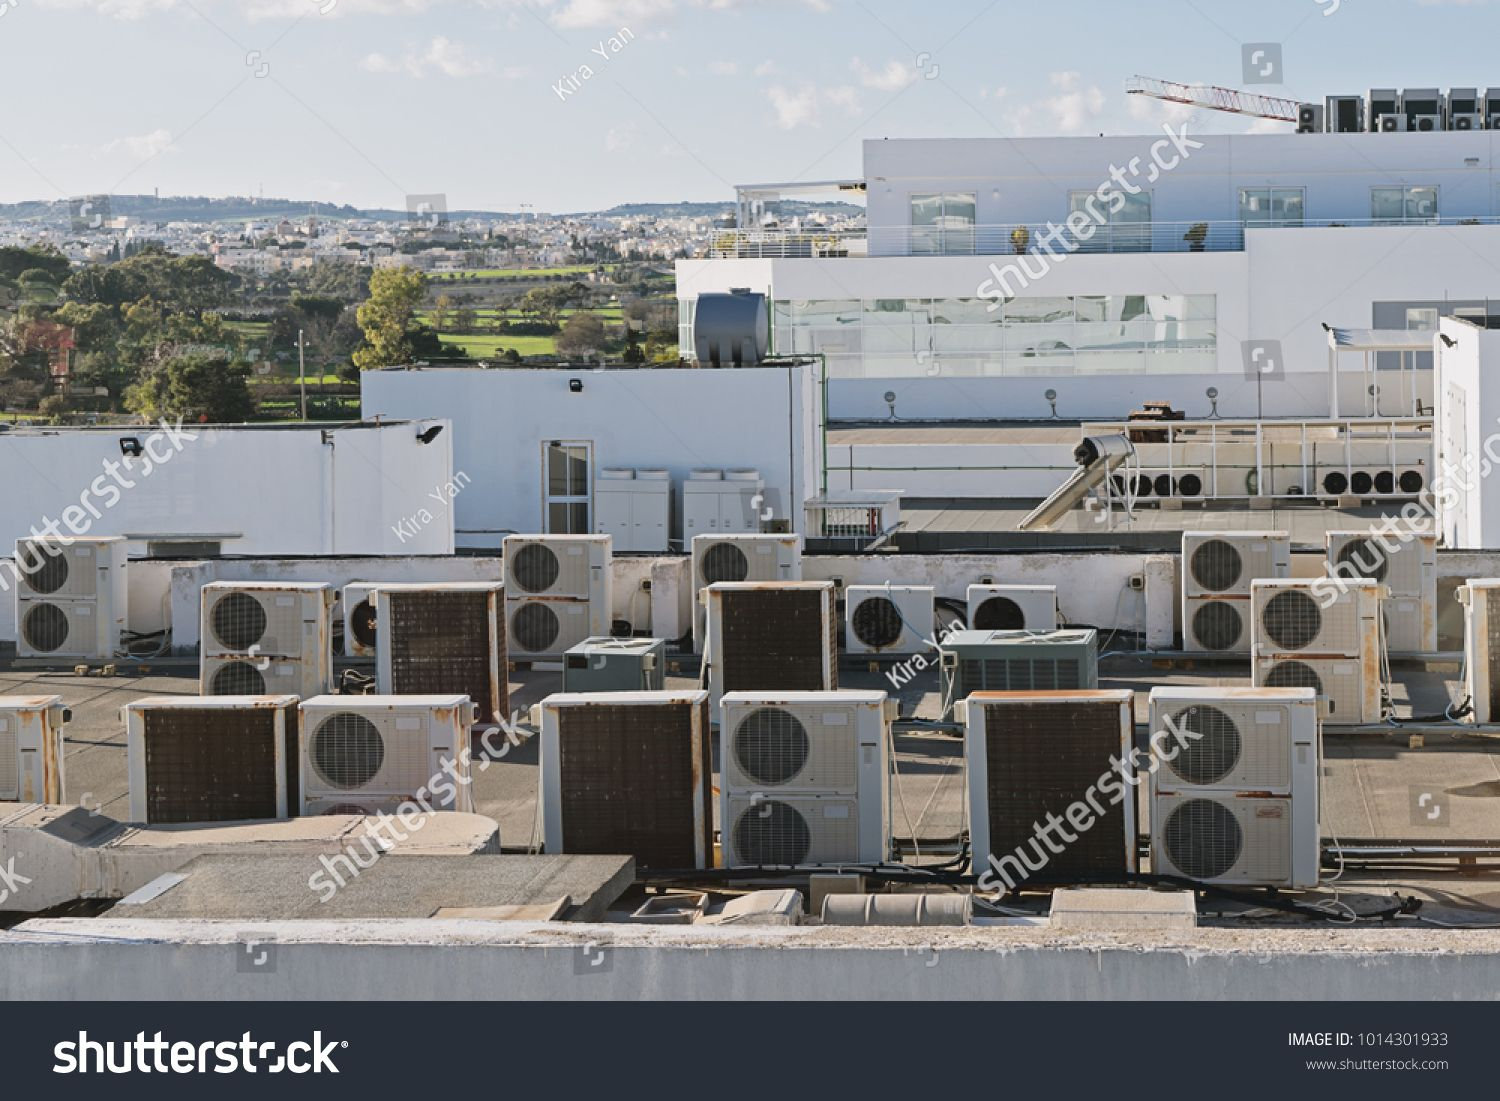 View of Exhaust vents of industrial air conditioning and